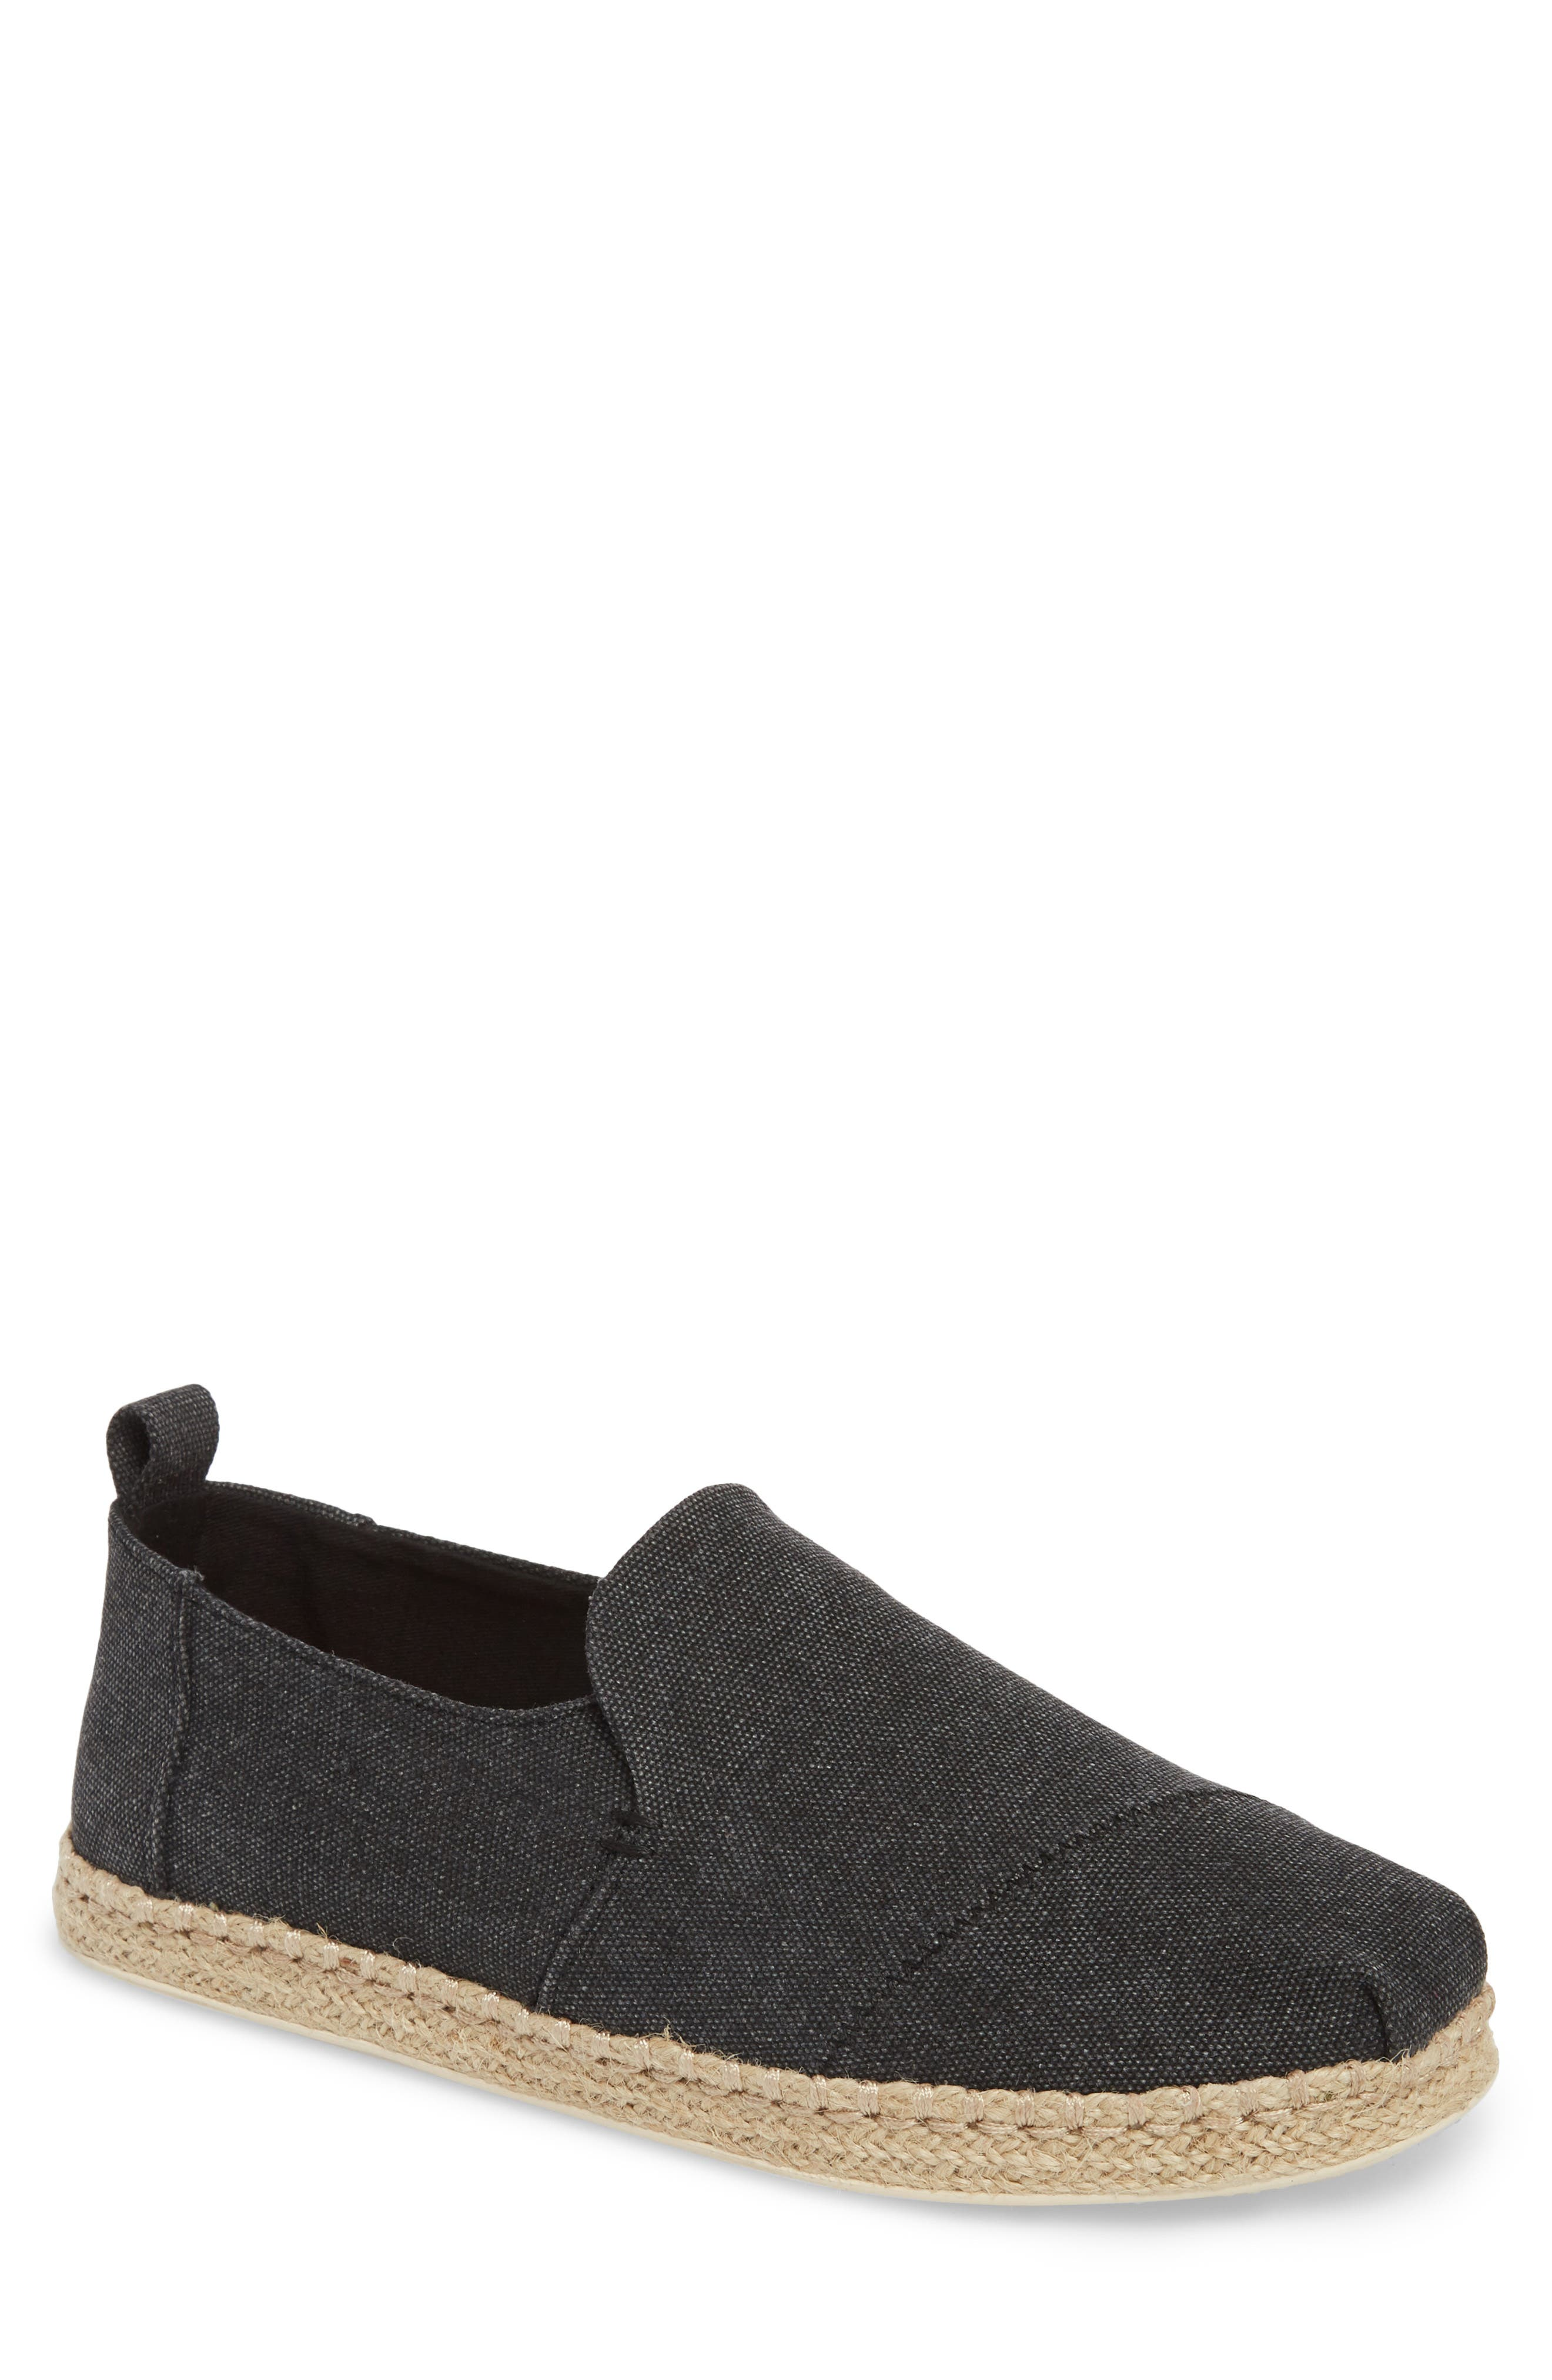 Deconstructed Alpargata Slip-On,                         Main,                         color, 001